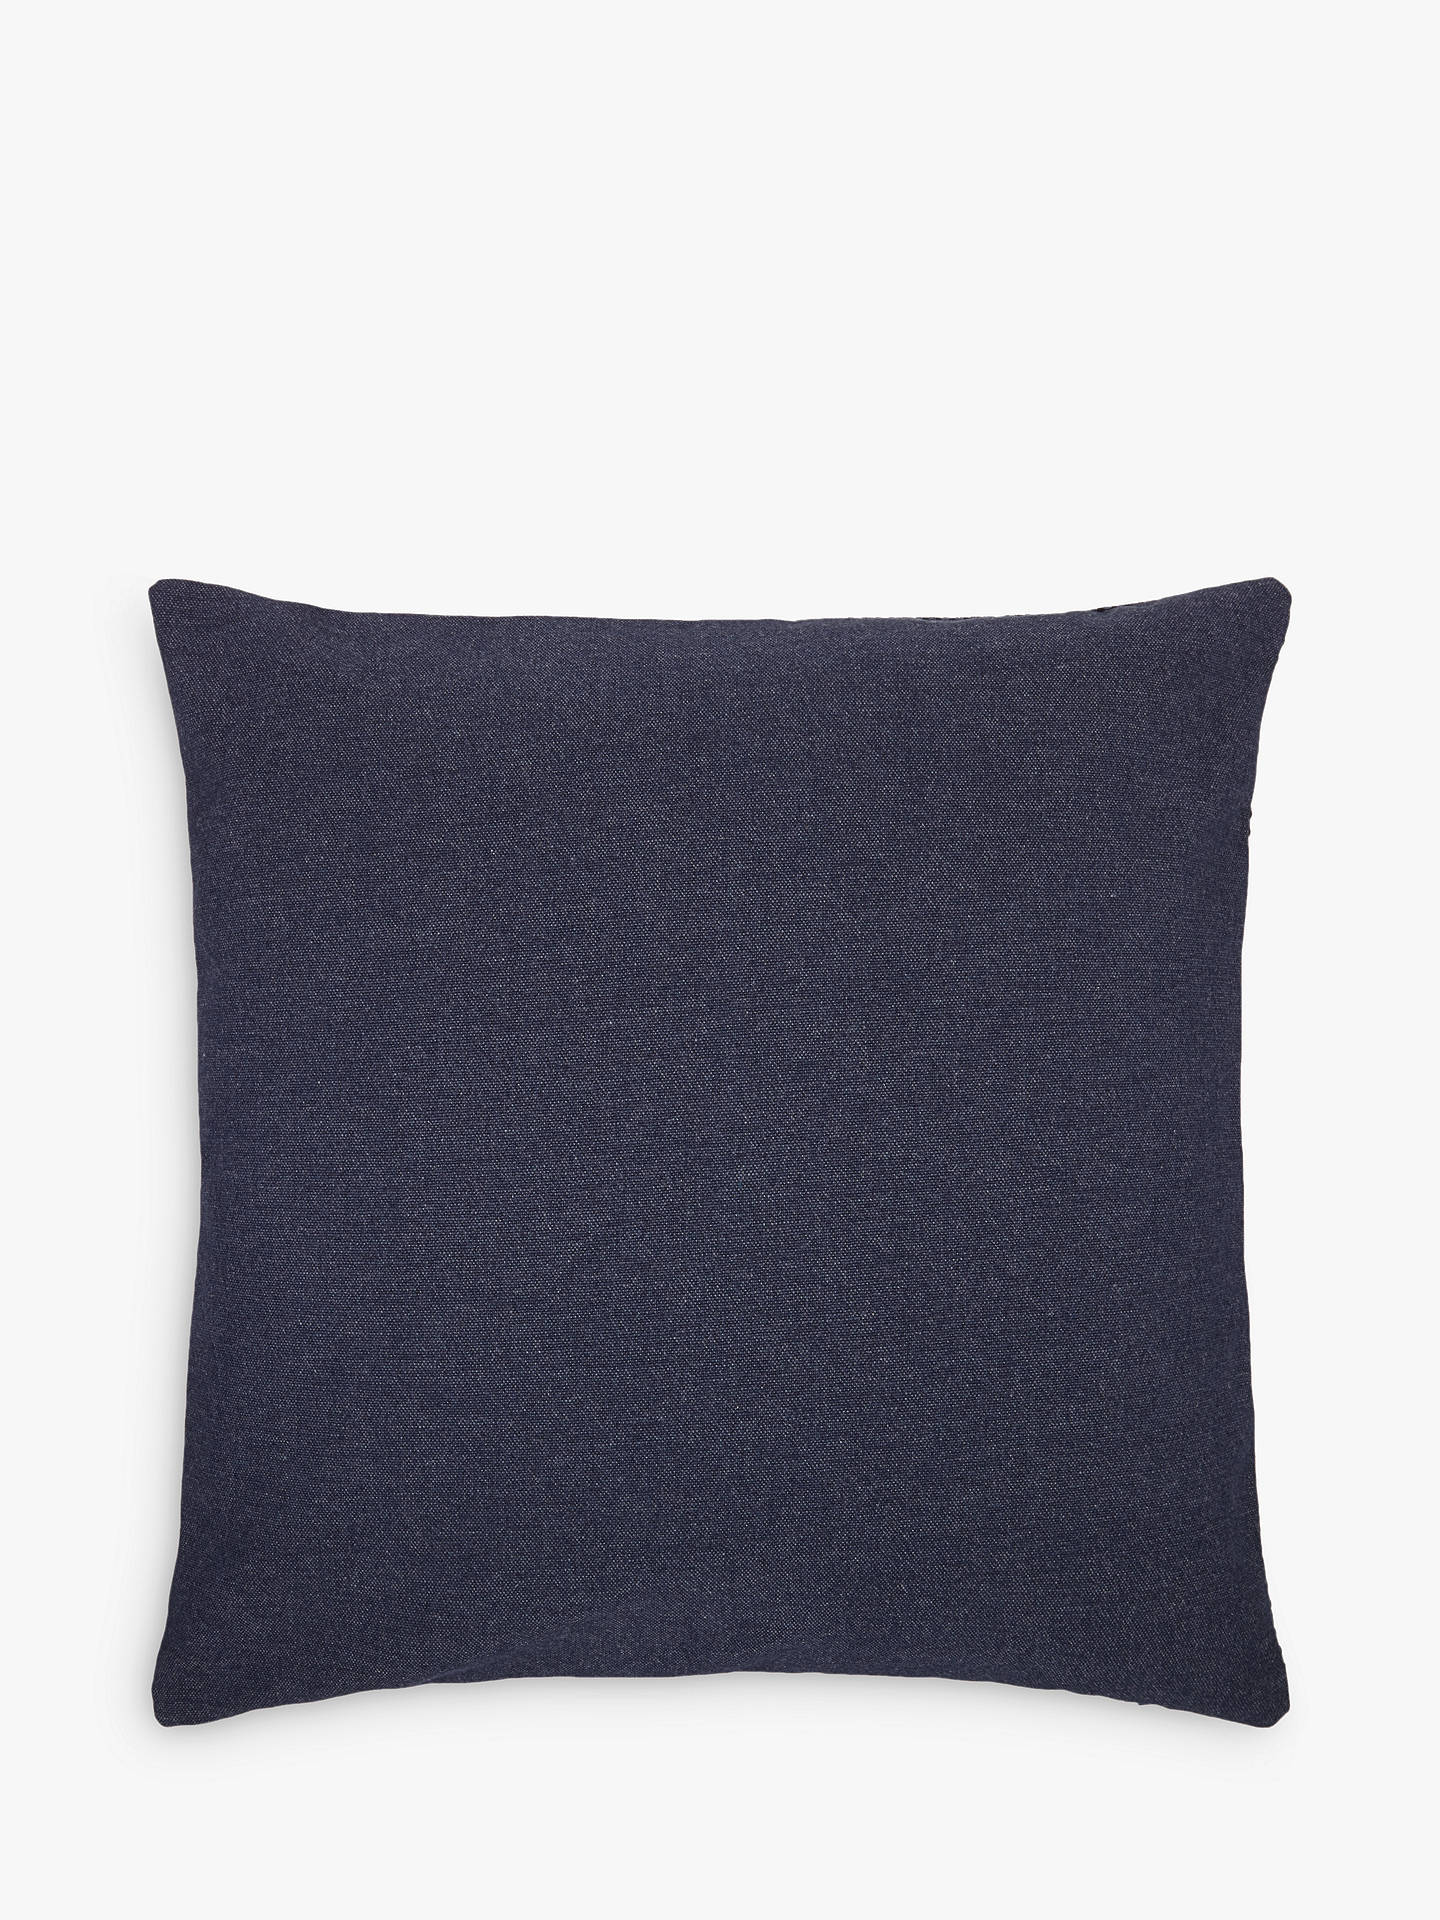 Buy Design Project by John Lewis No.048 Cushion, Night Sky Online at johnlewis.com